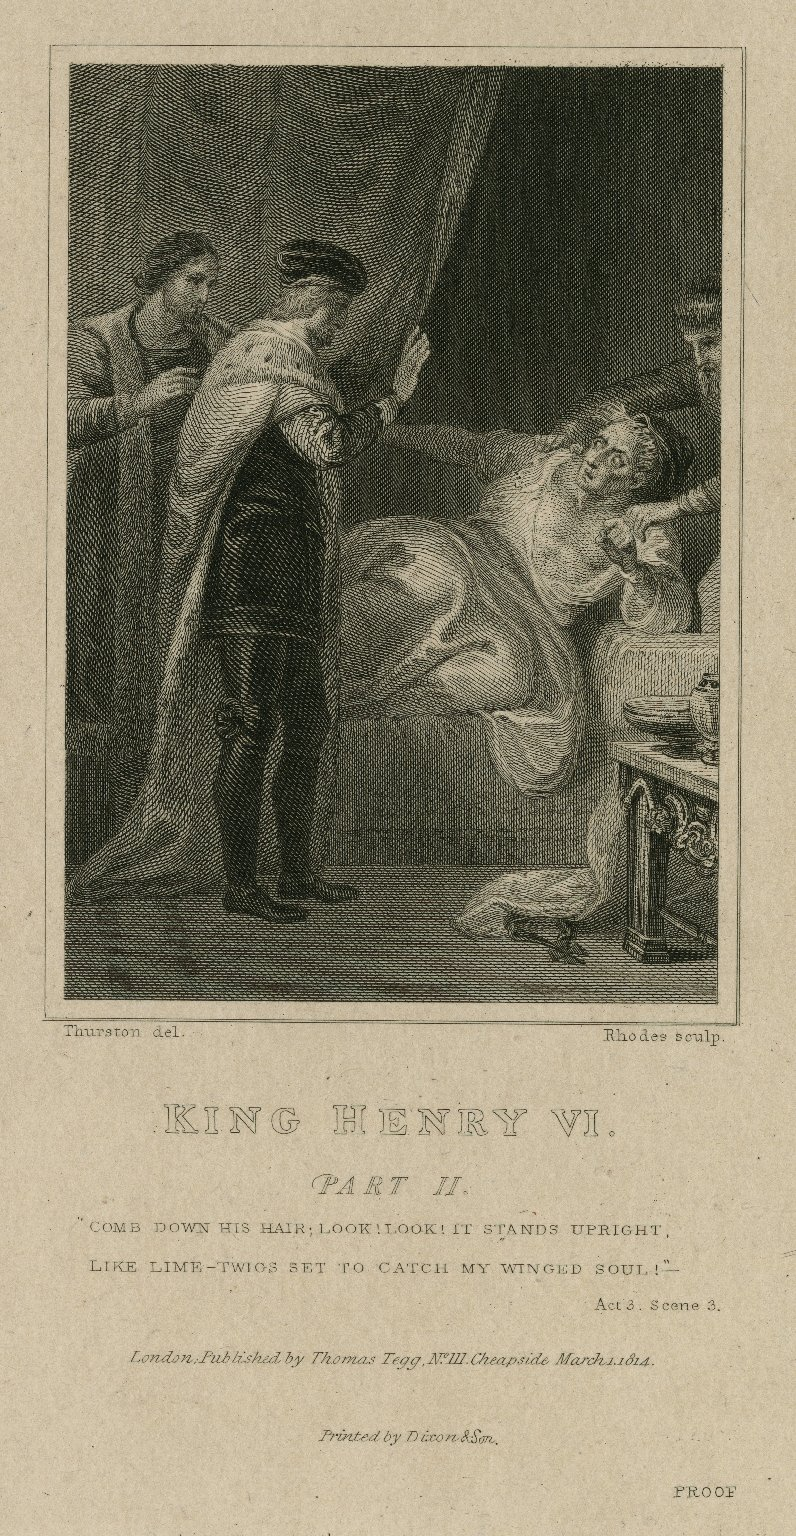 King Henry VI, part II, Comb down his hair, look! it stands upright ... act 3, scene 3 [graphic] / Thurston del. ; Rhodes sculp.